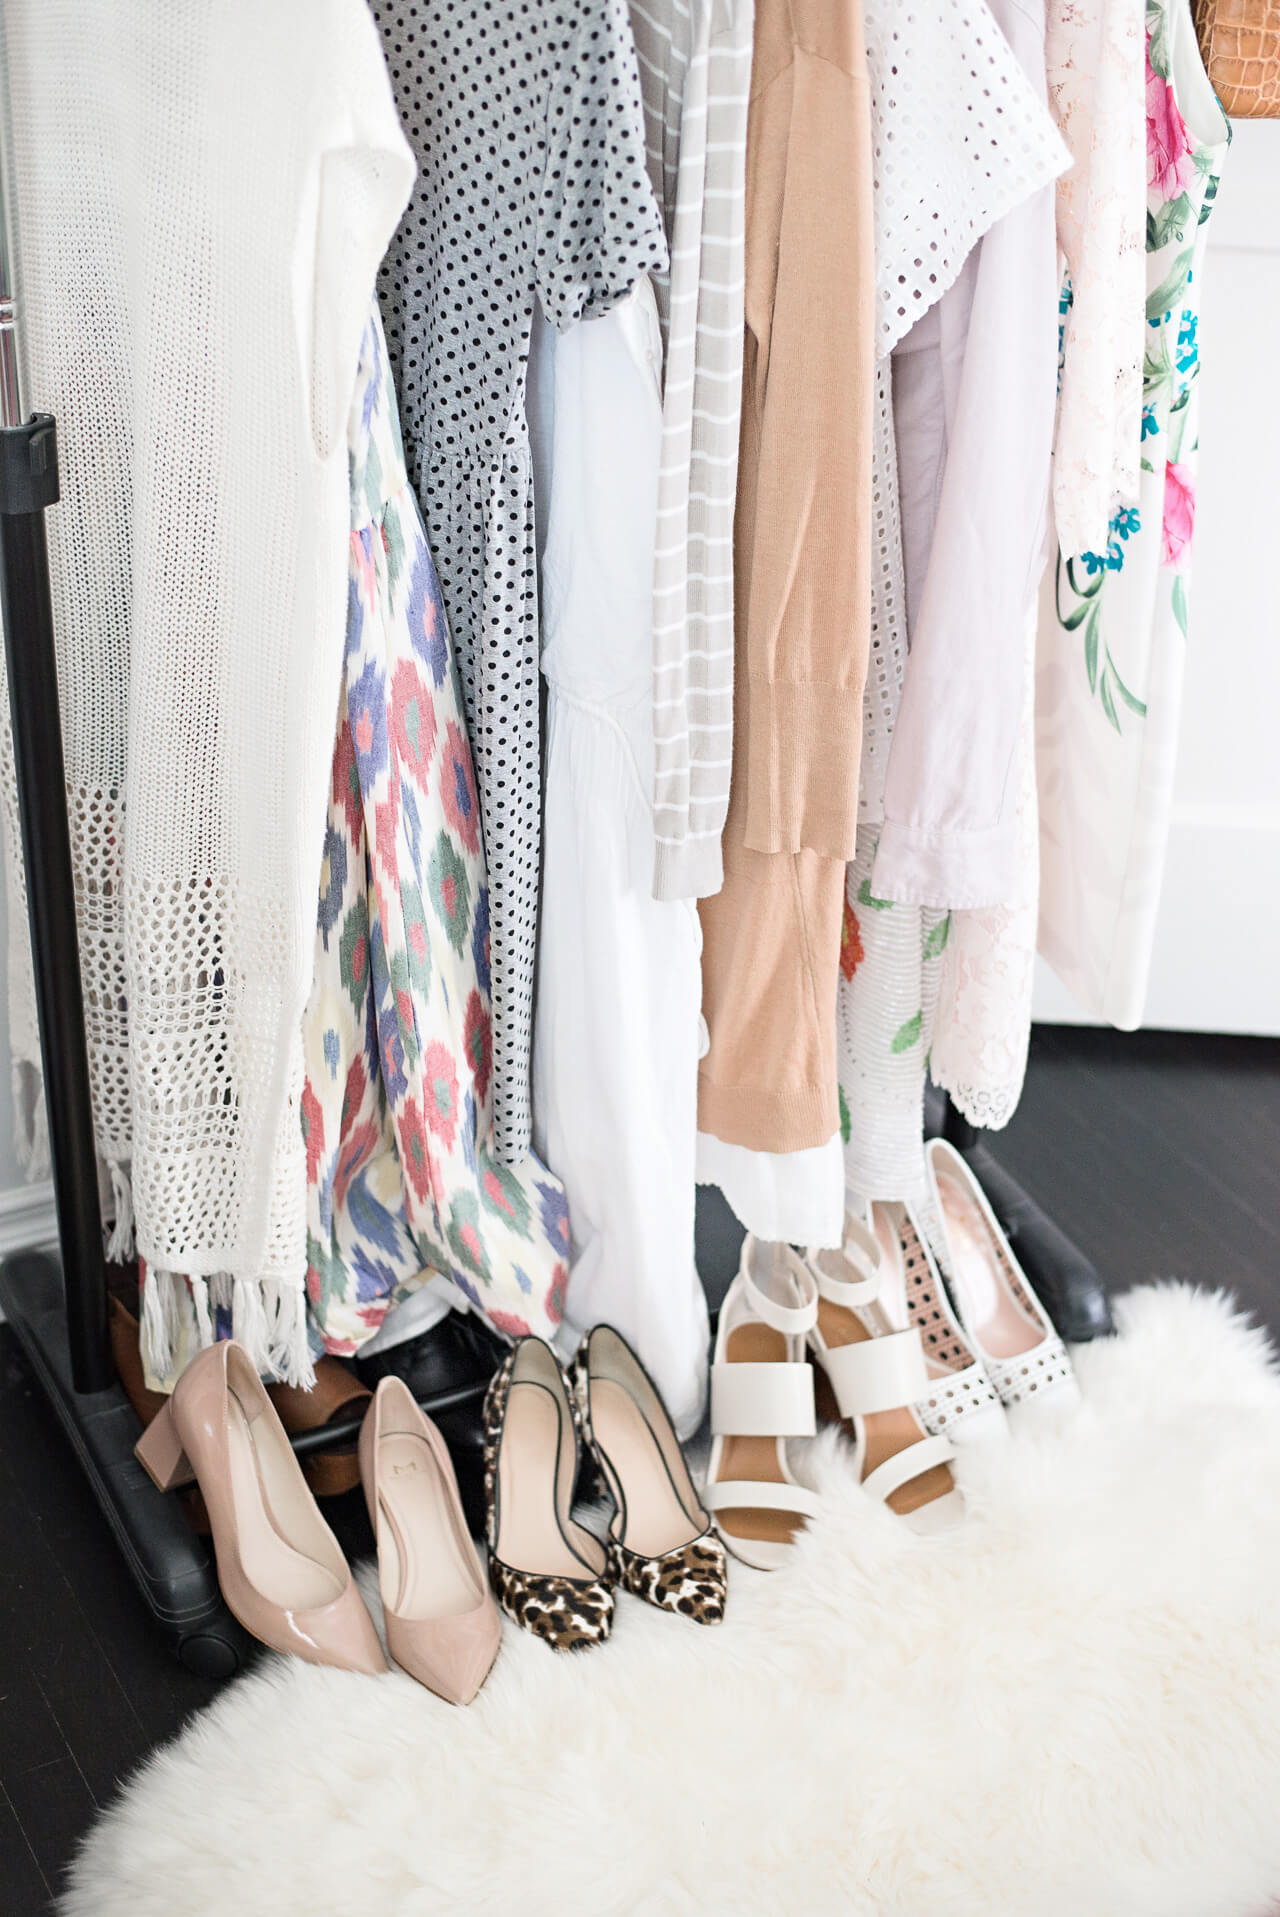 clothing_rack_with_shoes